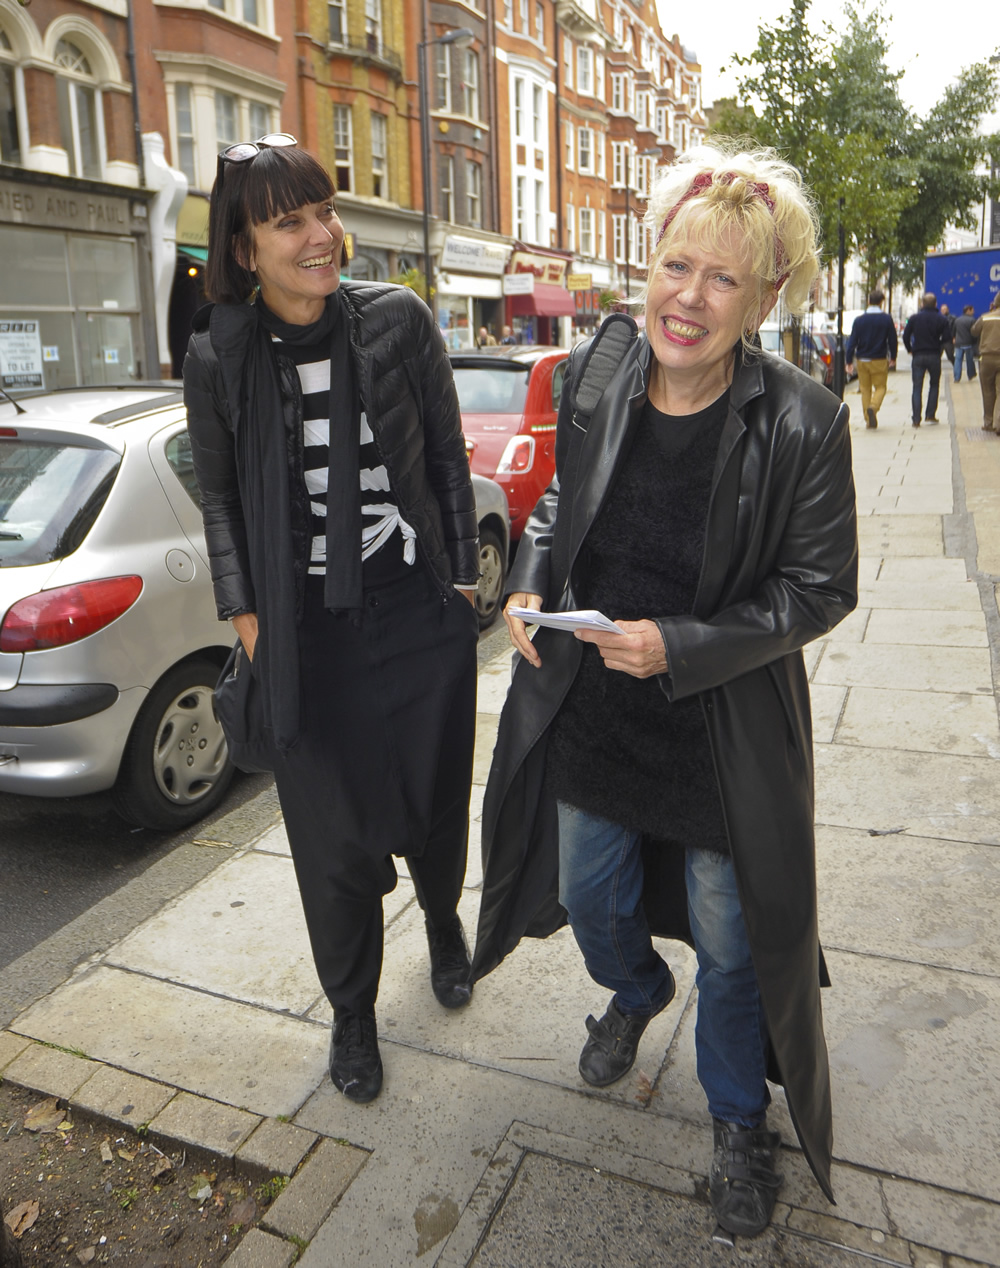 Swing Out sister's Corinne Drewery, left, with Hazel O'Connor, September 2012